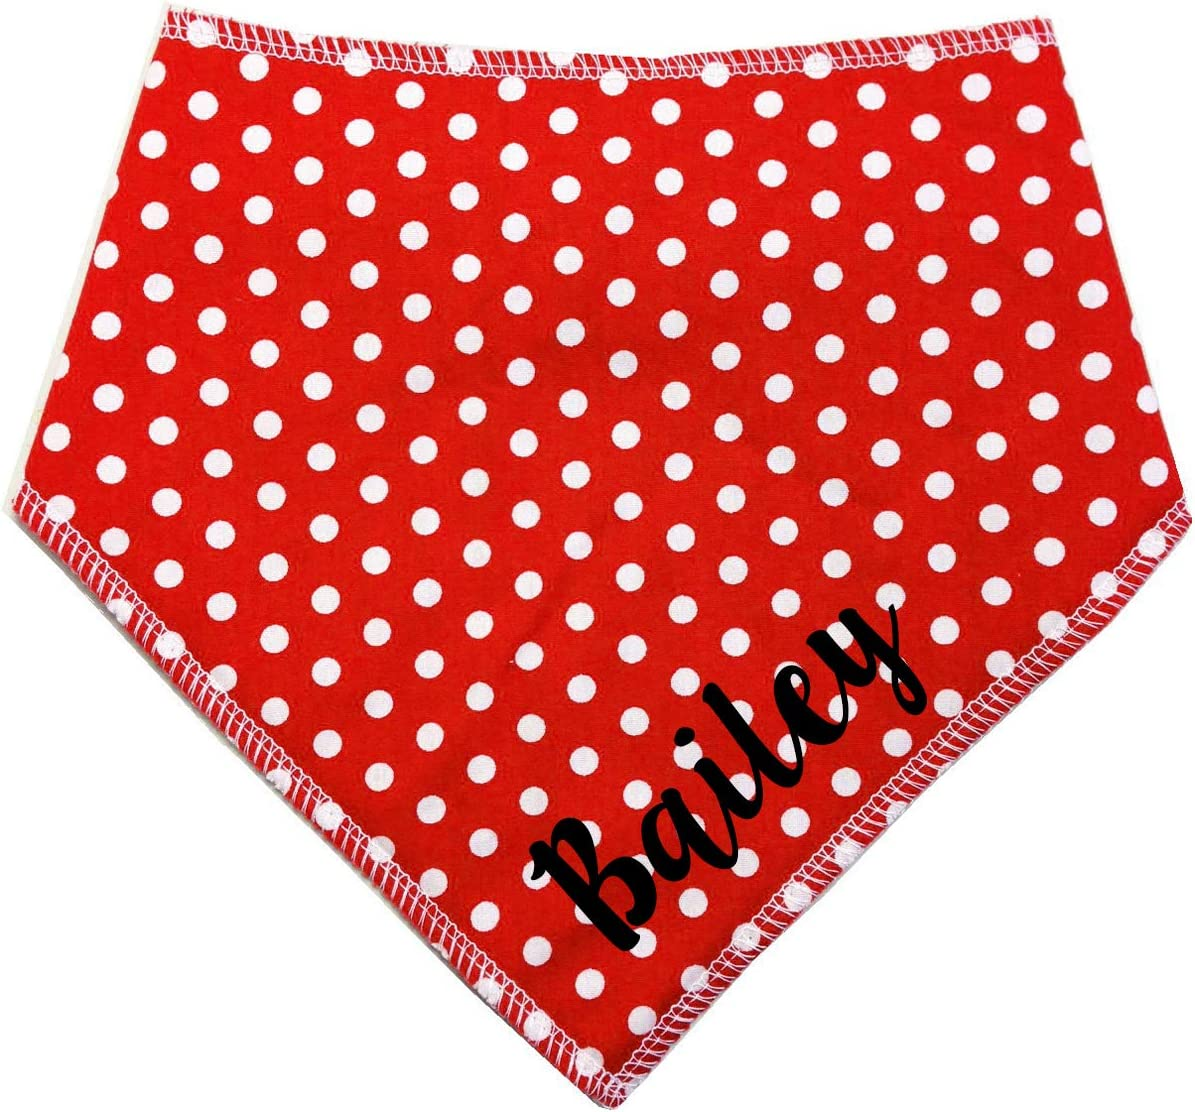 Spoilt Rotten Pets S2 PERSONALISED Red Polka Dot Spotty Vintage Style Boho Fabric Dog Bandana Small Dogs Terriers /& Cockerpoo